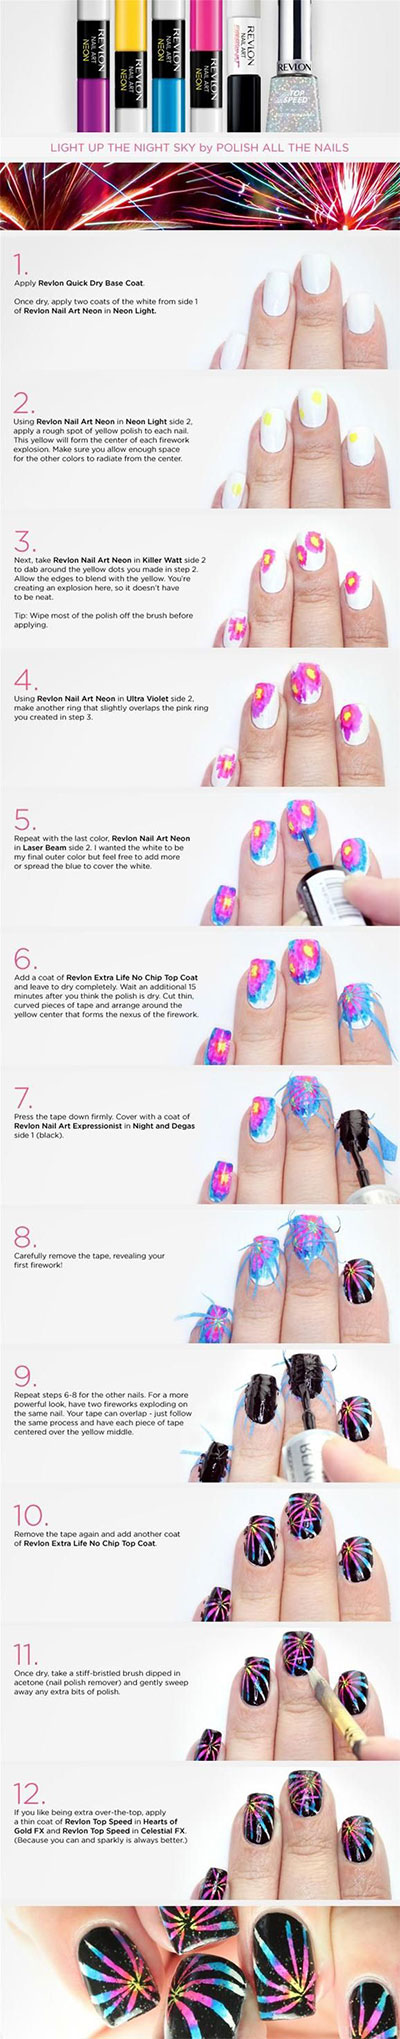 15-Pretty-Nail-Art-Tutorials-For-Beginners-Learners-2014-13